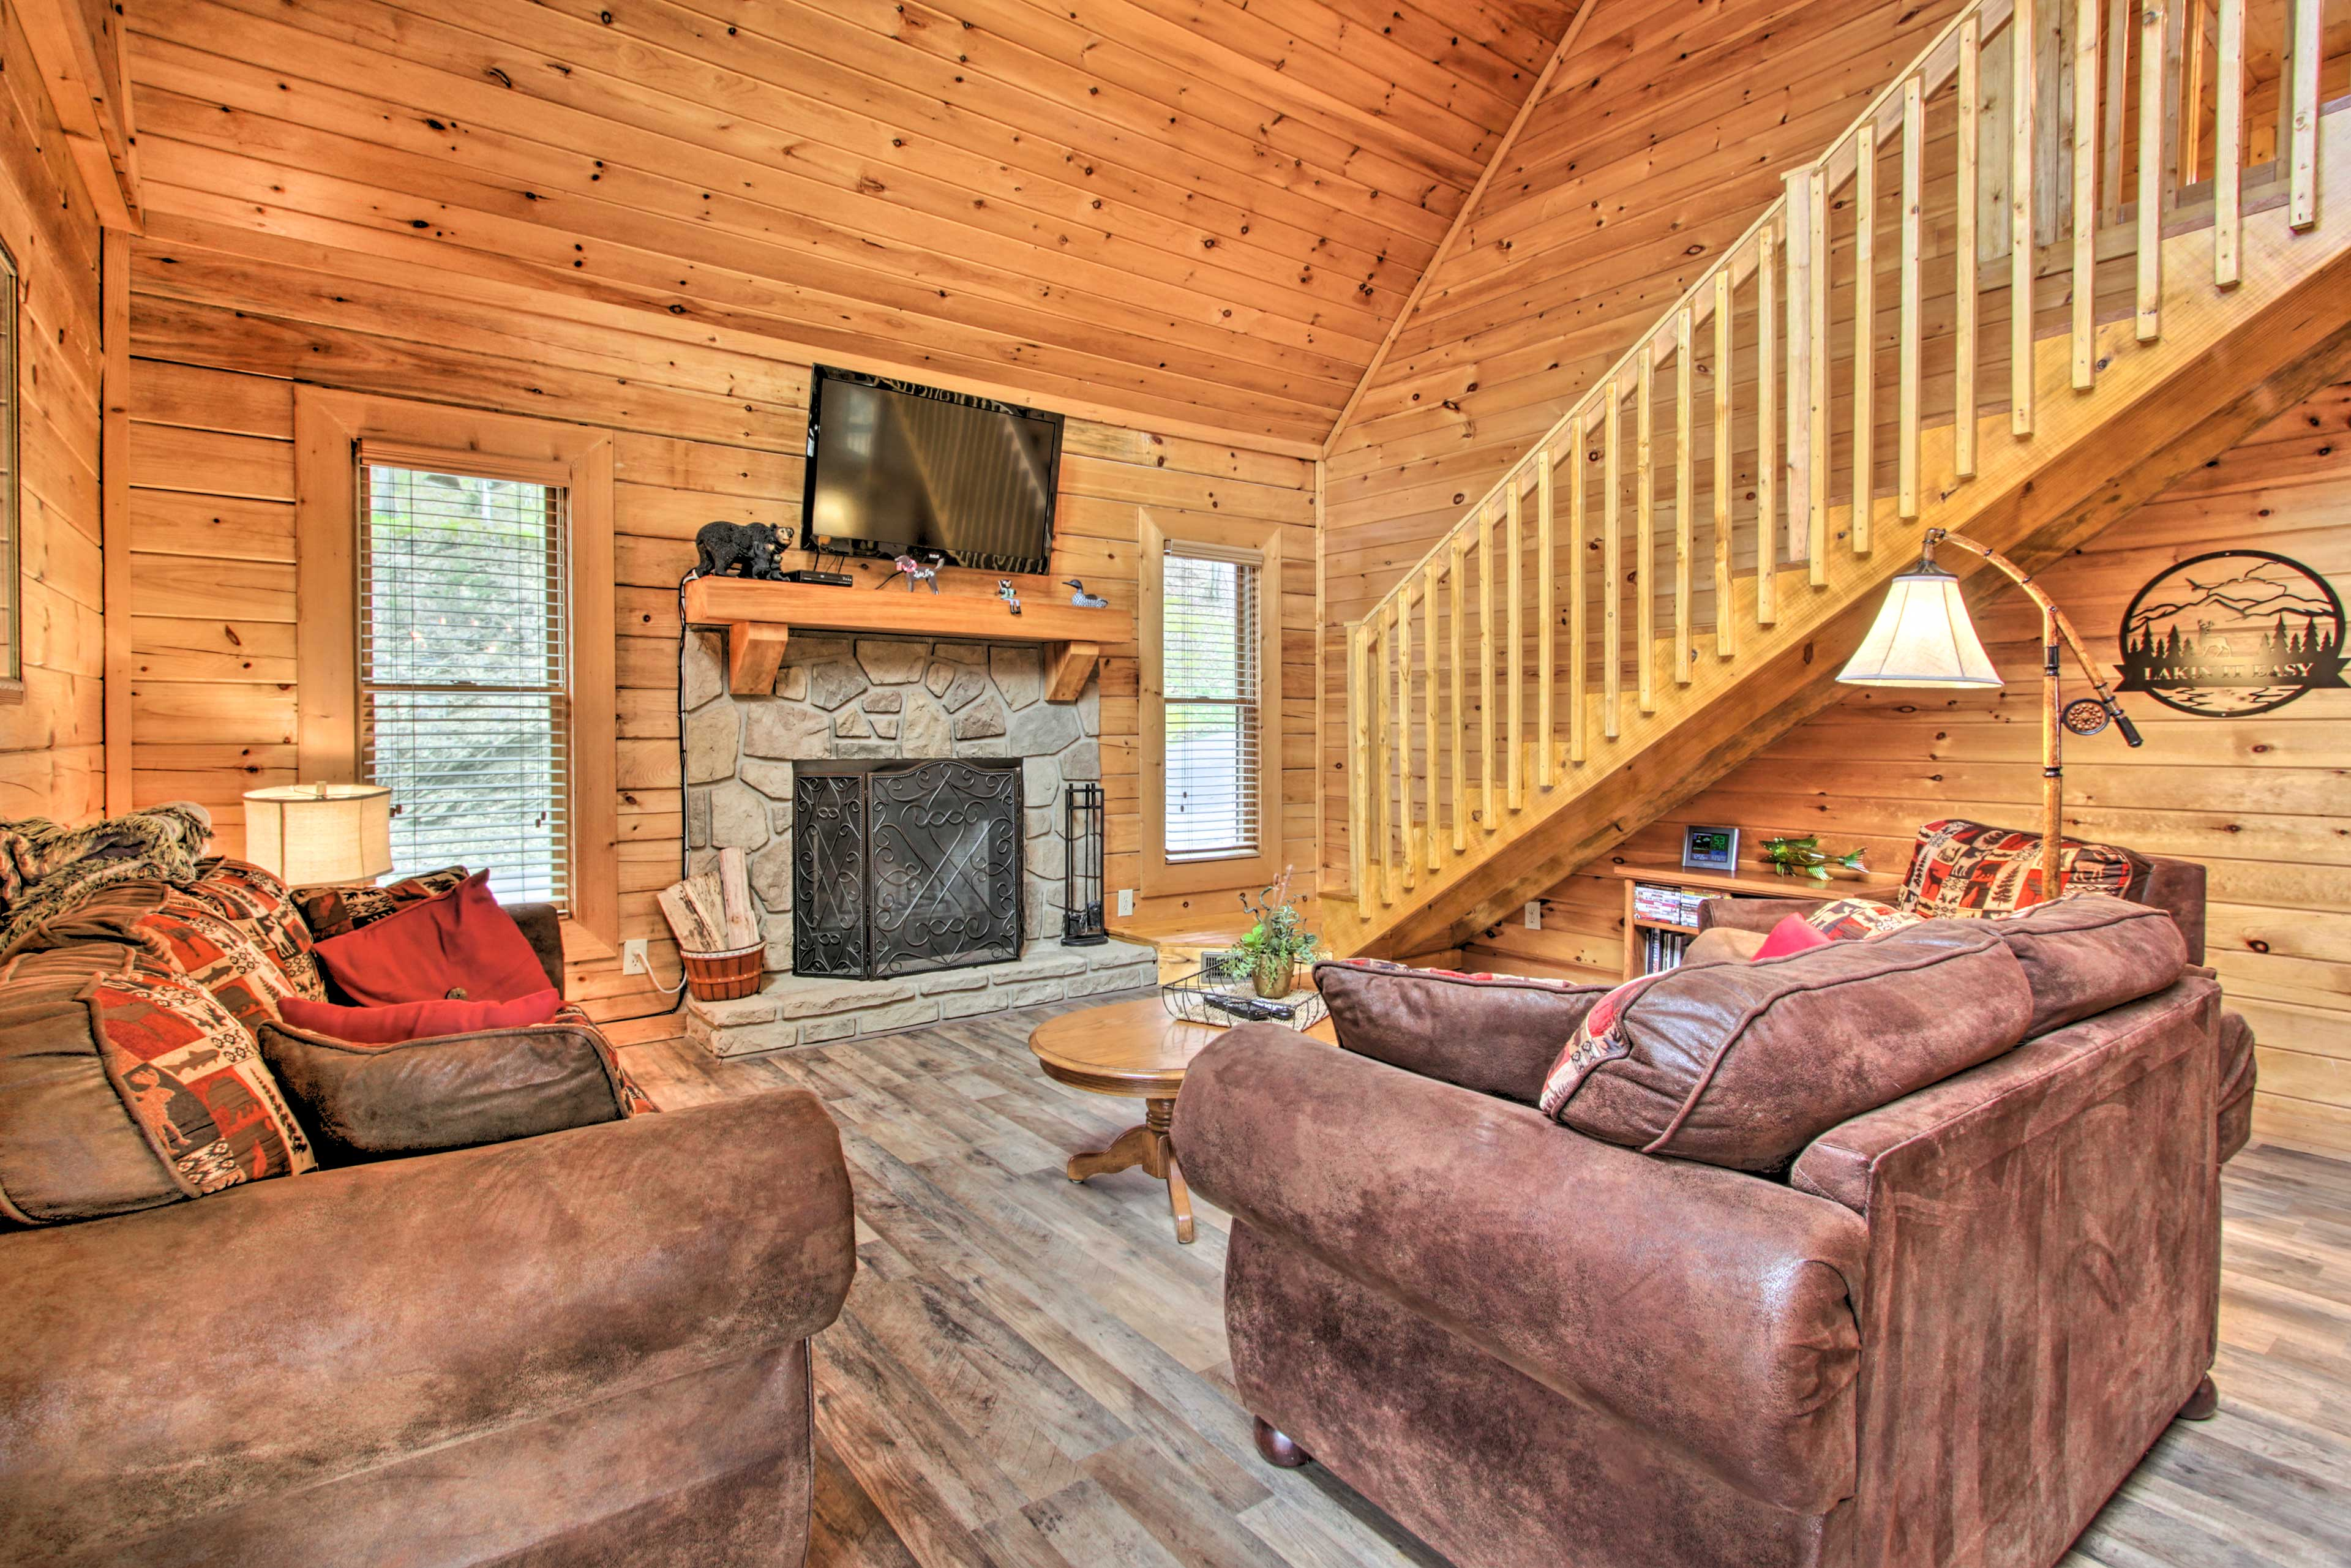 Enjoy your stay at this 3-bedroom, 2-bathroom home on Douglas Lake!